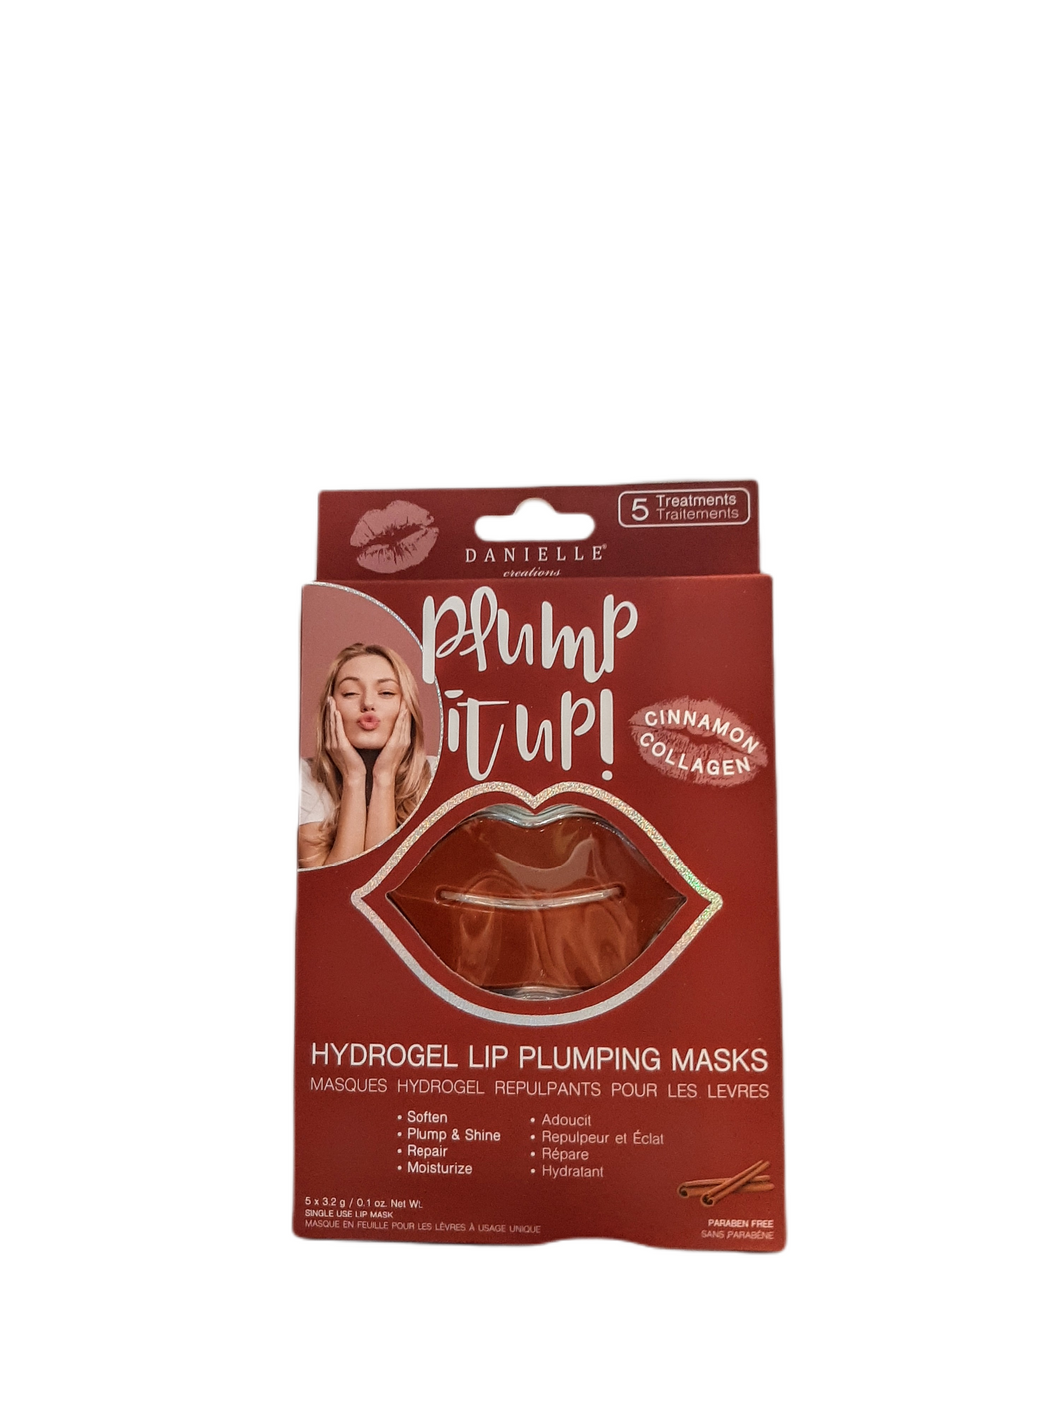 Say goodbye to dry, chapped lips and hello to a PERFECT POUT! These masks feature a soft, gel-like texture that gently adheres to lips for instant hydration.  Infused with COLLAGEN and CINAMMON to reduce the appearance of fine lines and helps lips look fuller and more plumped.  Paraben free